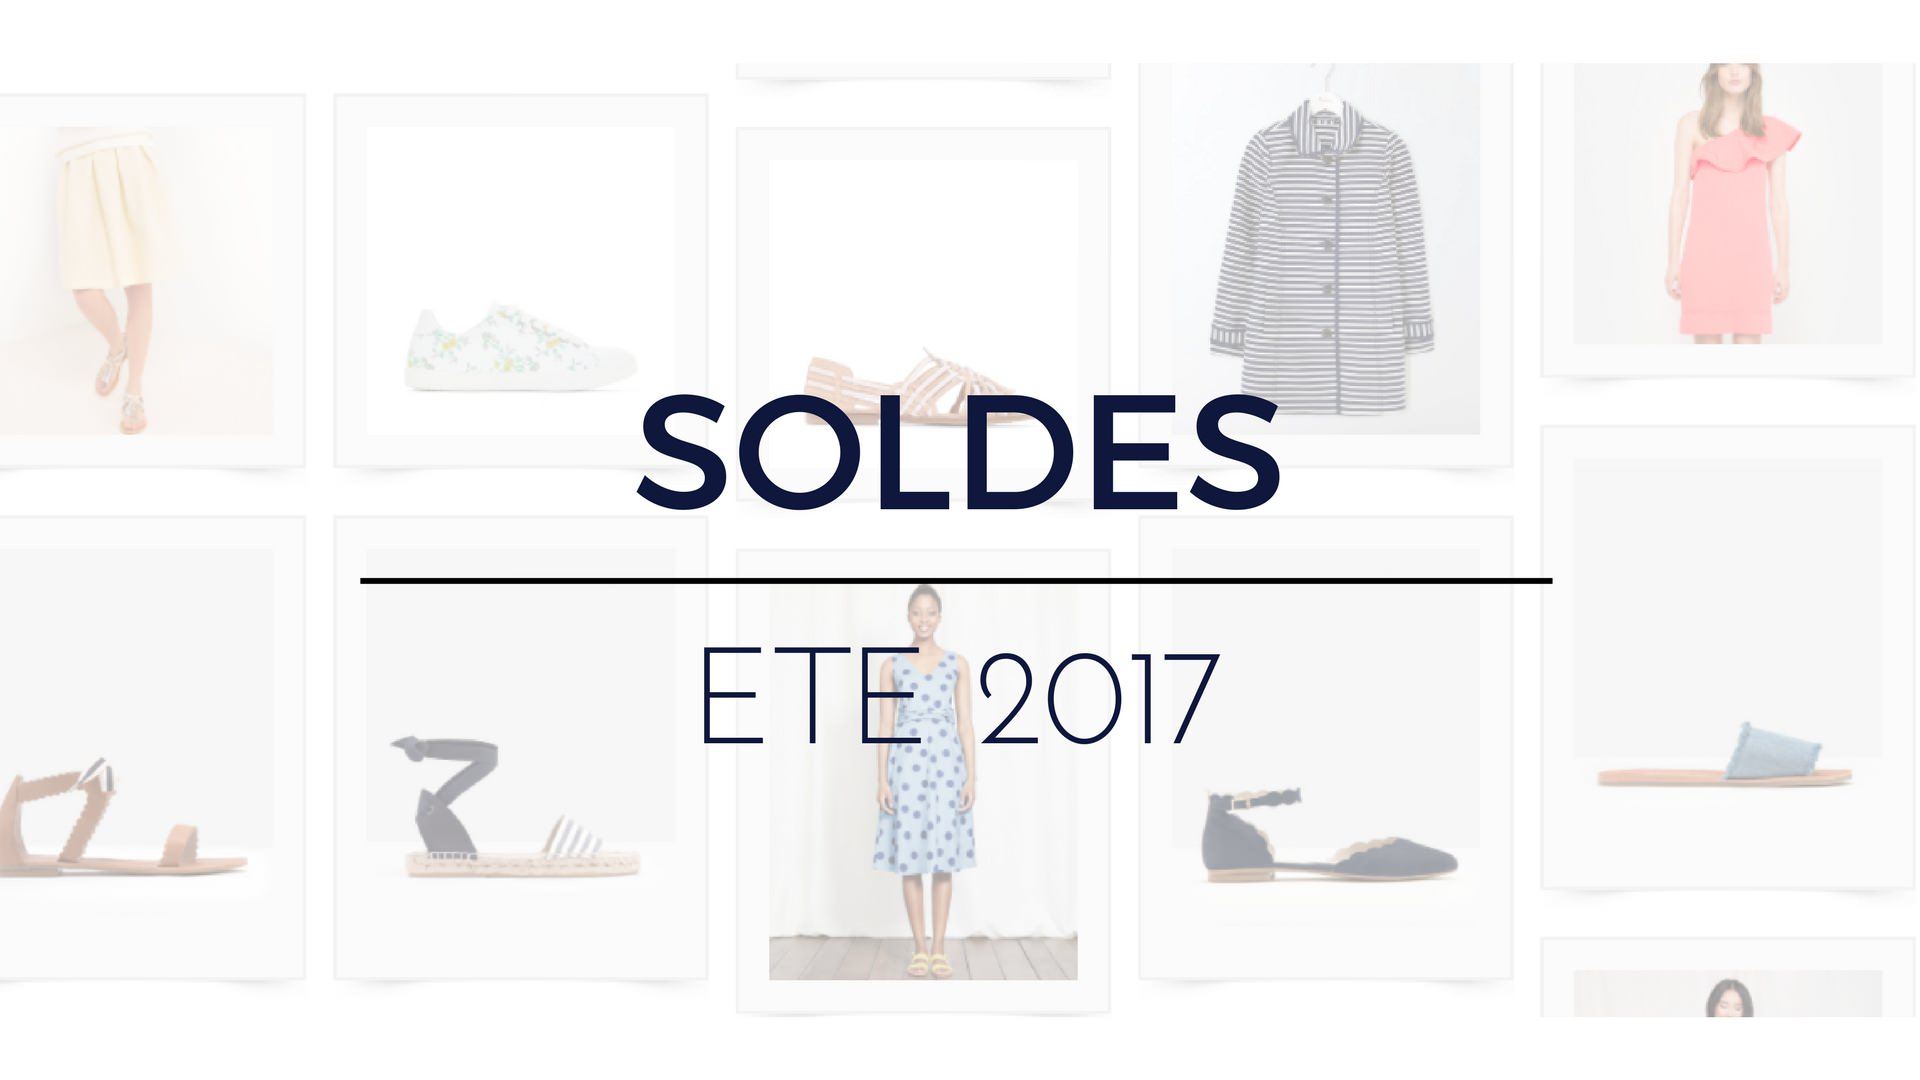 soldes t 2017 2 me d marque s lections bons plans et codes promos mode and the city. Black Bedroom Furniture Sets. Home Design Ideas